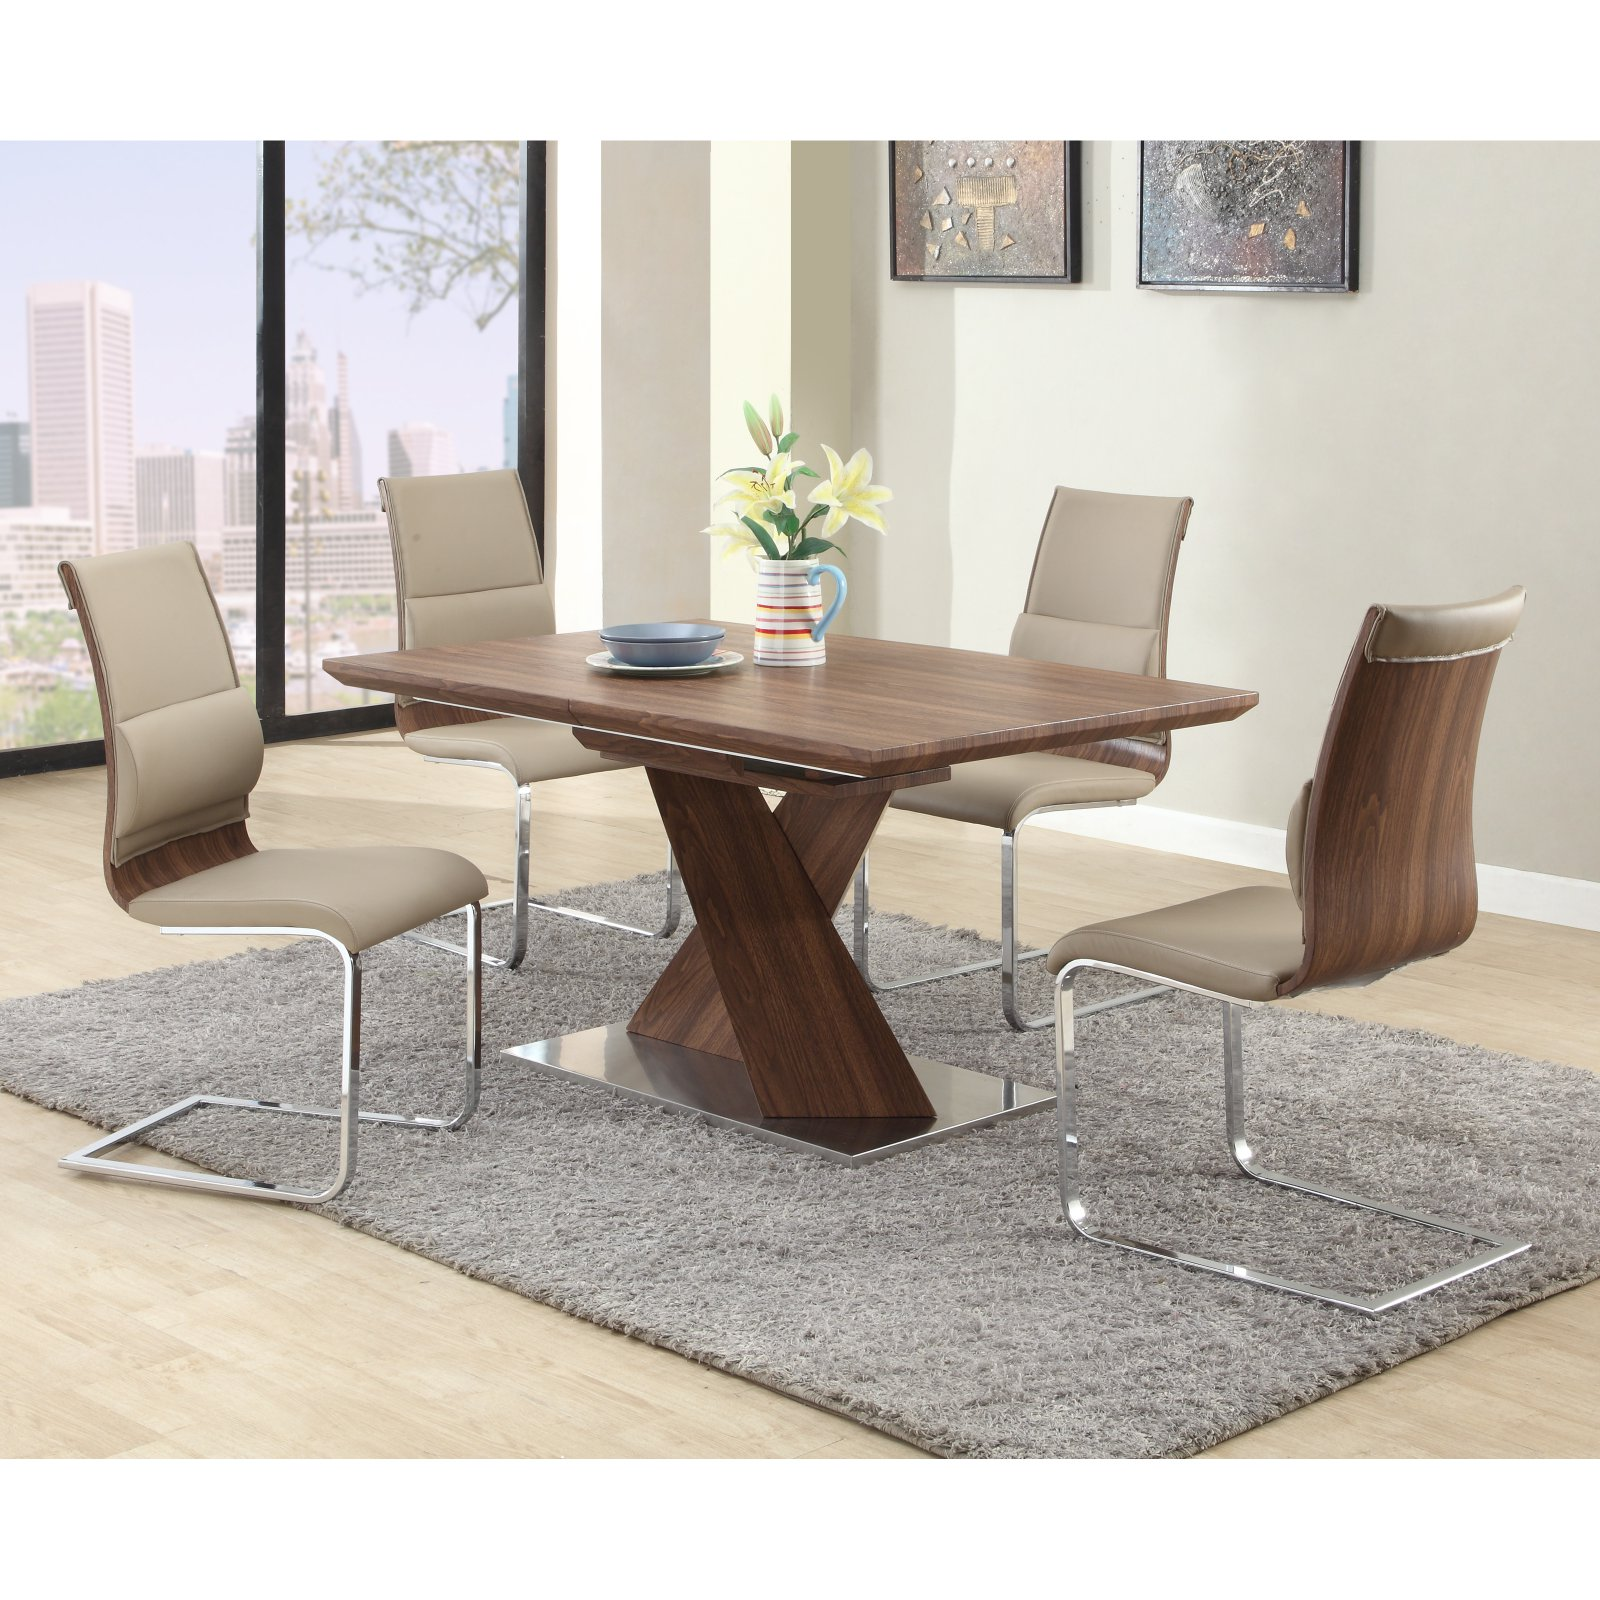 Chintaly Bethany 5 Piece Dining Table Set